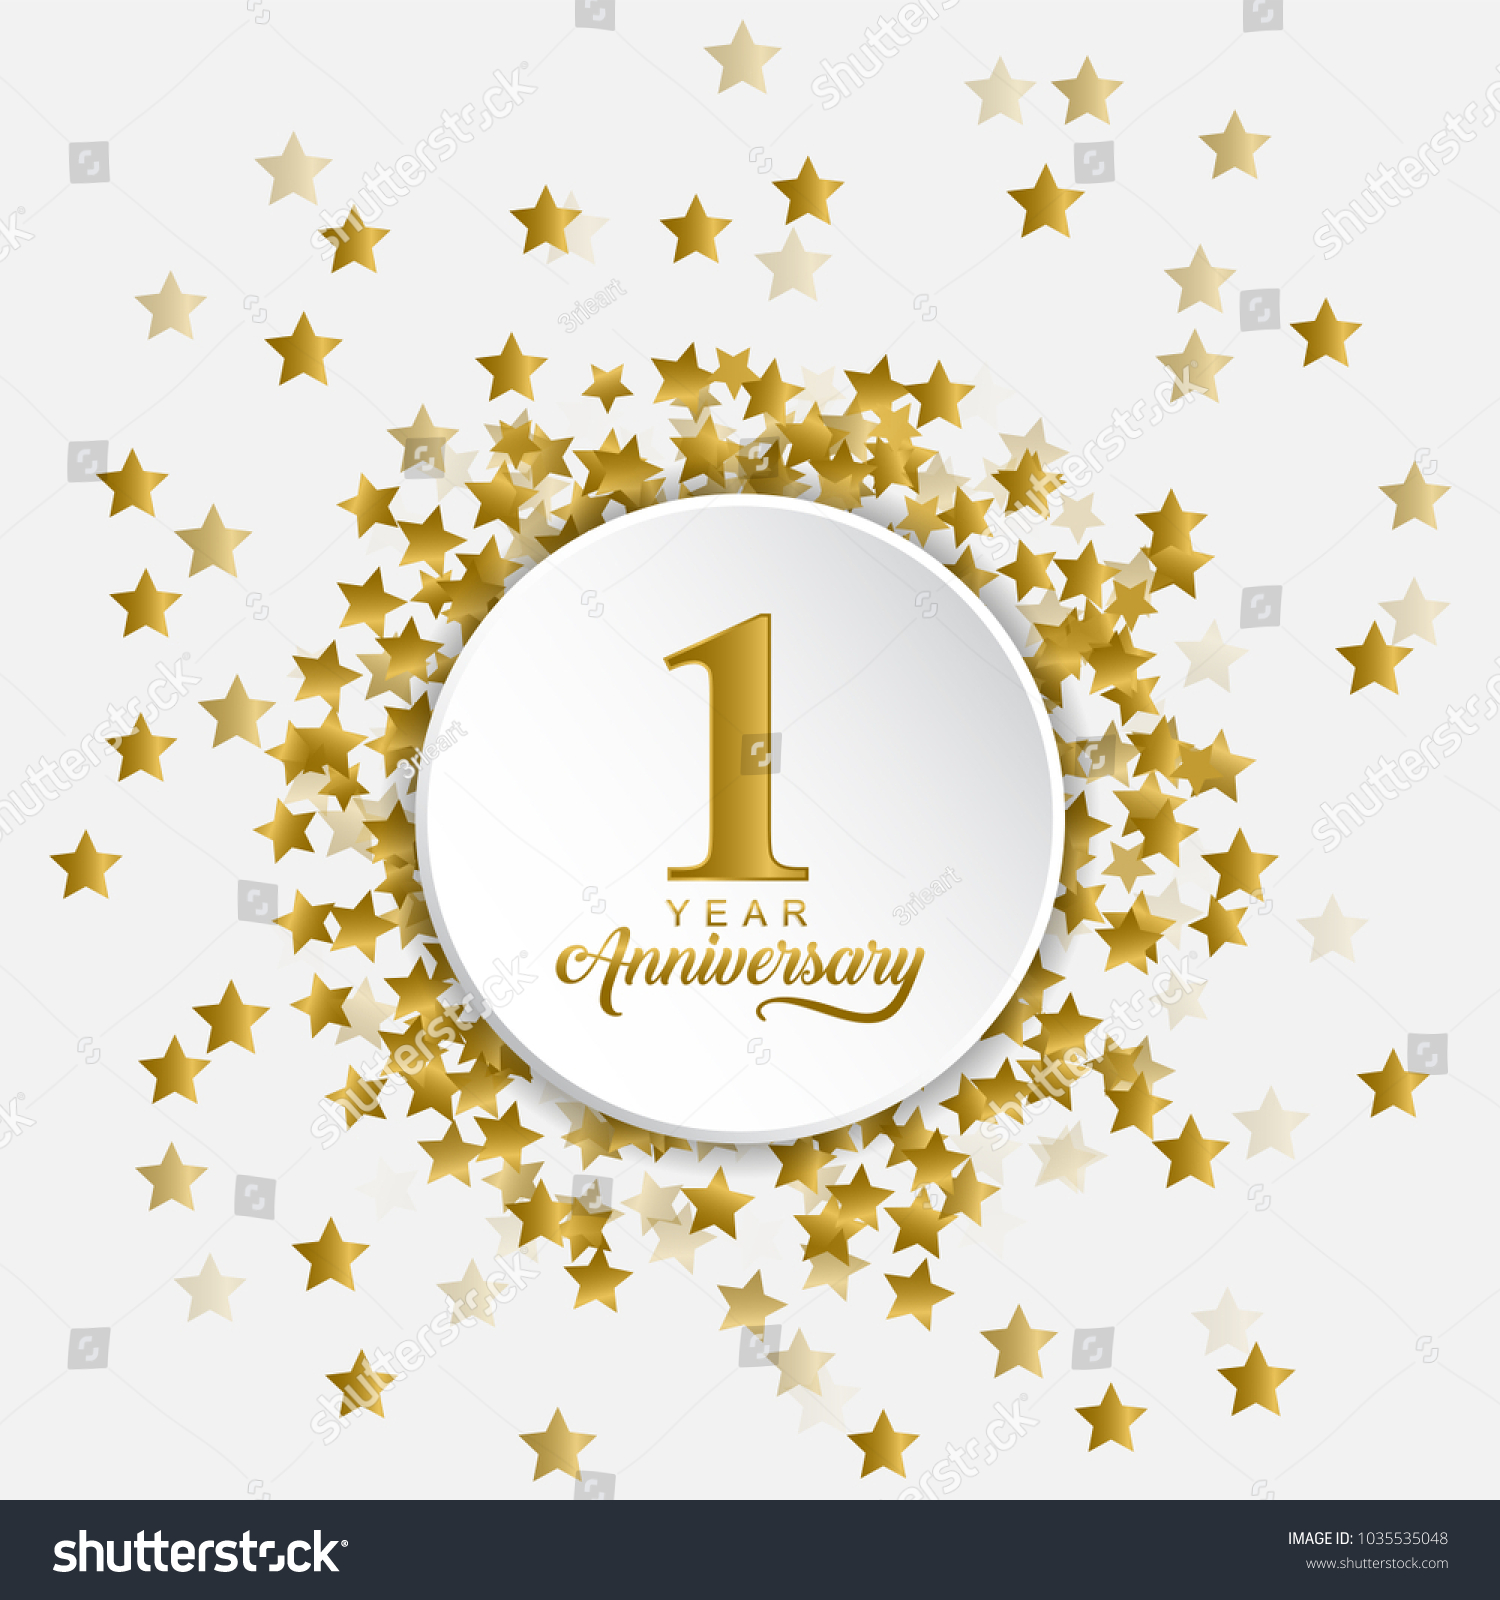 happy 1 year anniversary middle fly stock vector royalty free